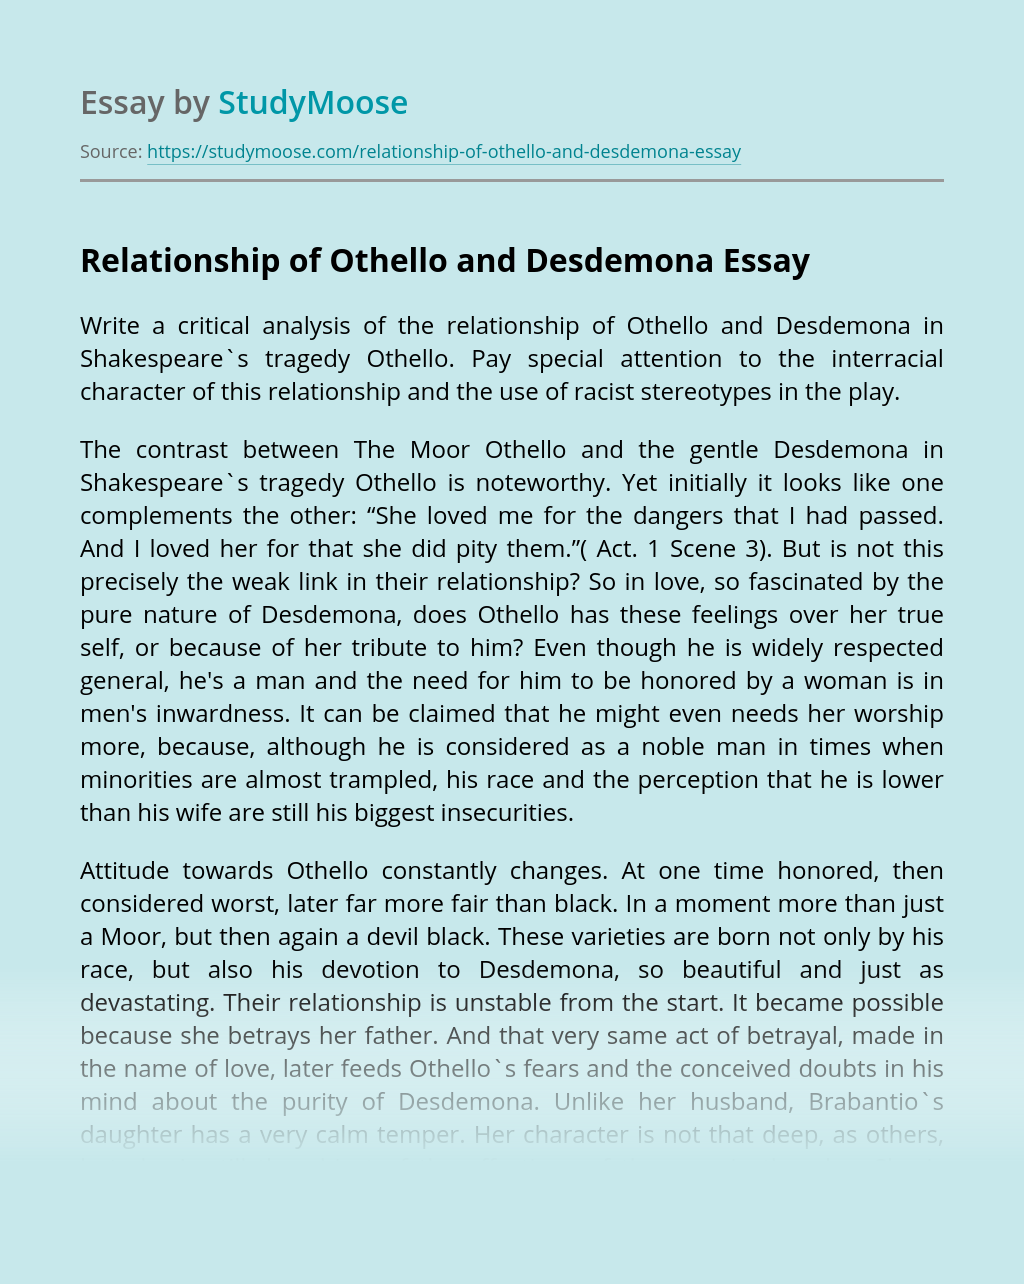 Relationship of Othello and Desdemona